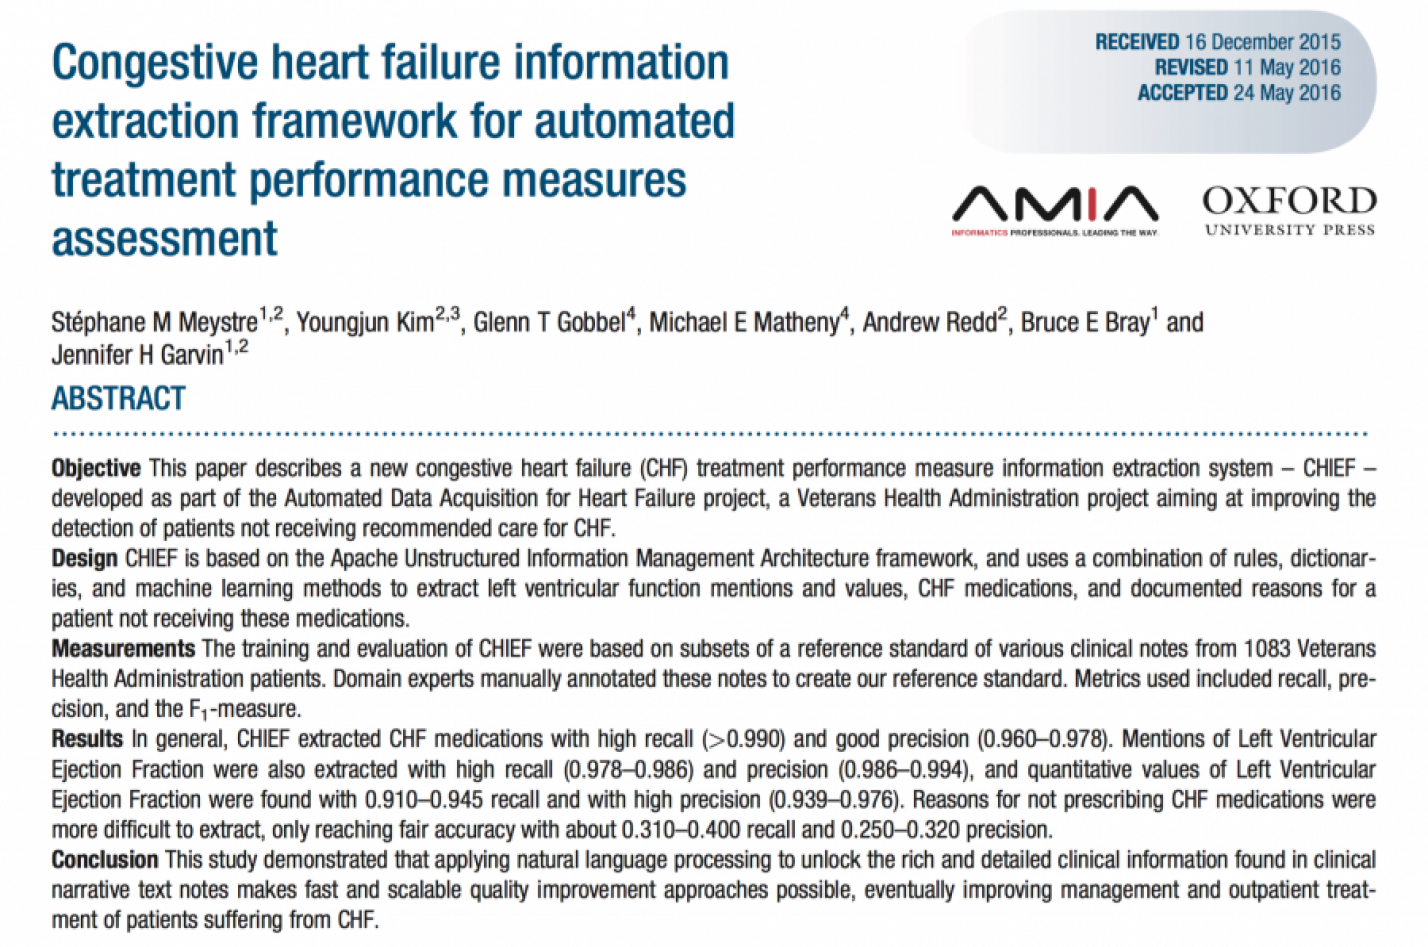 Congestive heart failure information extraction framework for automated treatment performance measures assessment